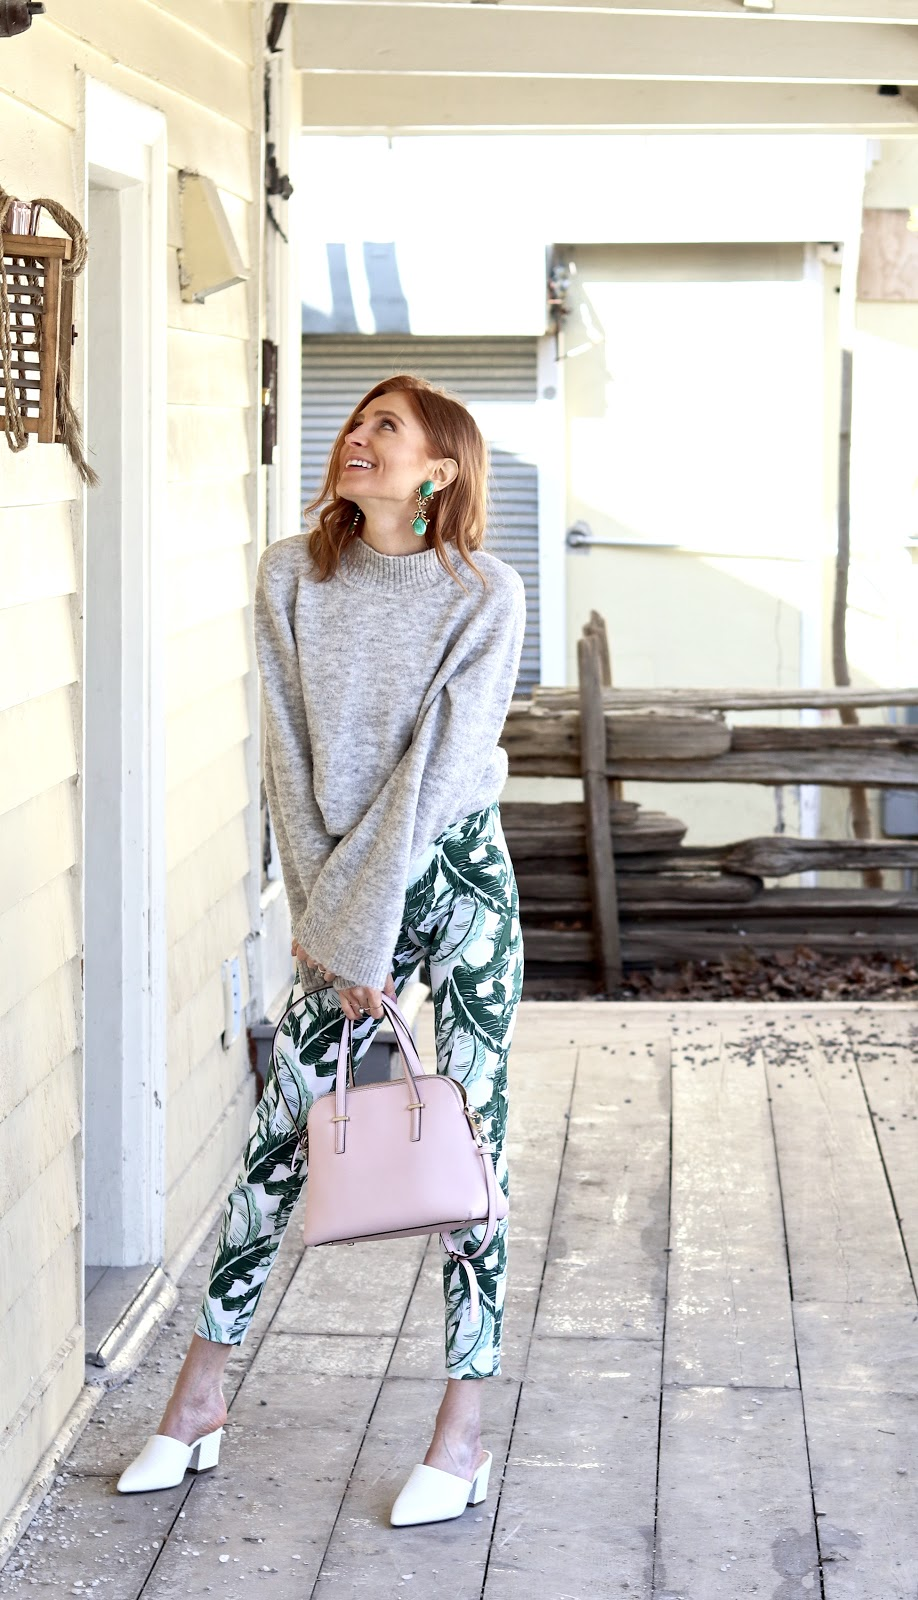 Winter to Spring Dressing, Spring pastels, grey turtleneck flared sleeves, palm print pants Old navy, Kate Spade bag, Expressions white block heel mules